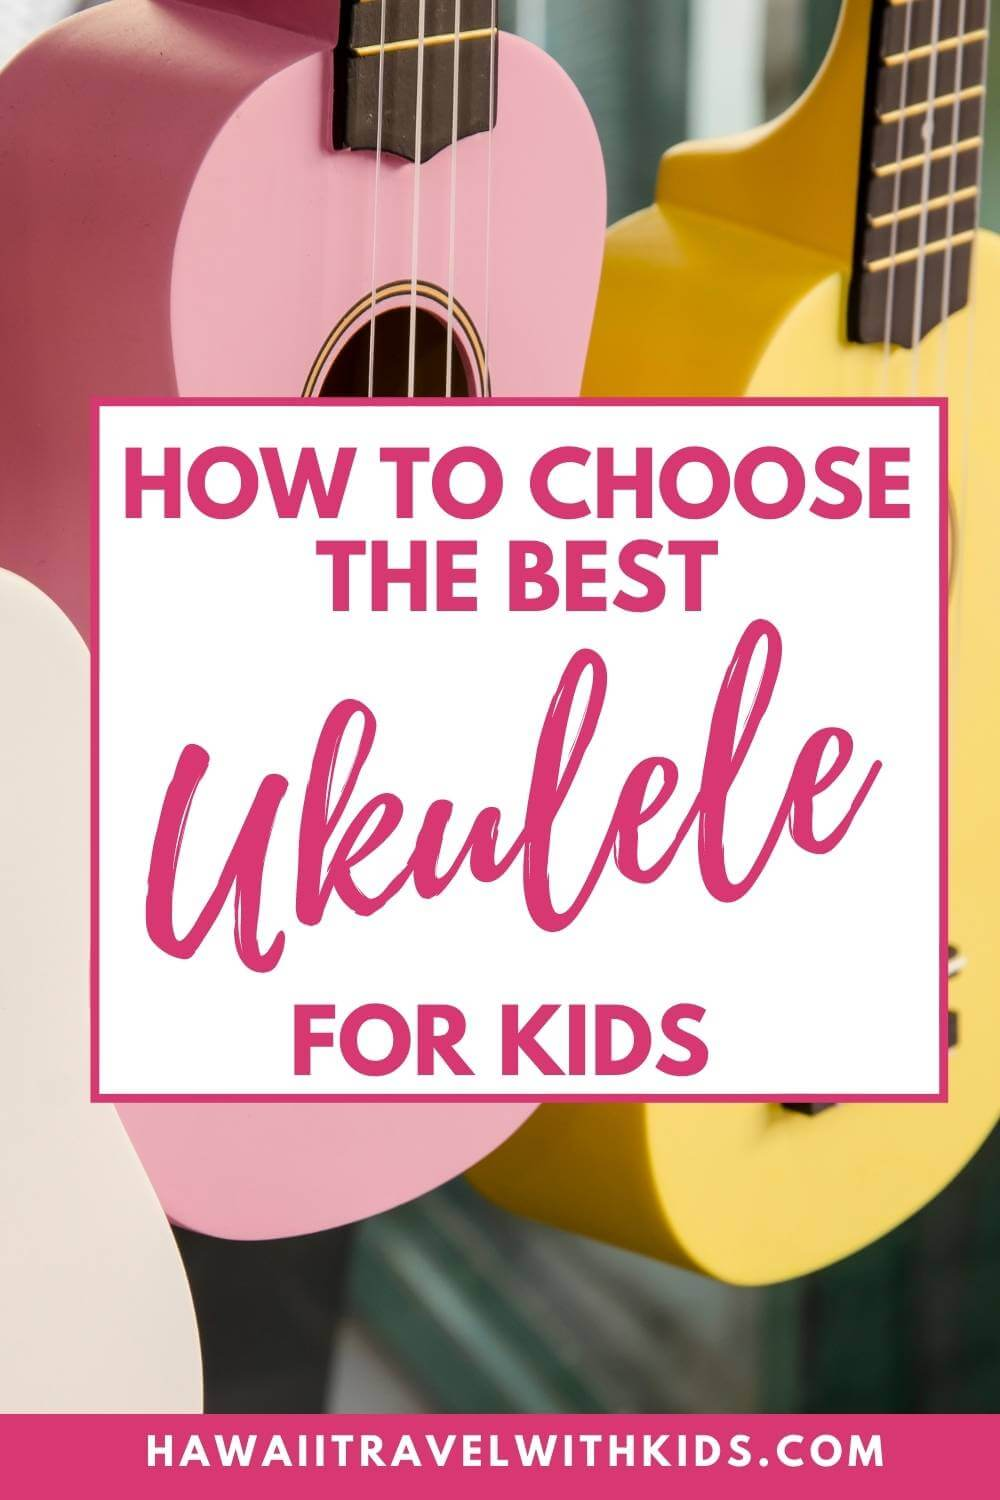 Are you looking for a ukulele for your toddler, preschooler or elementary student? Find out the best kids ukulele to choose, plus ukulele accessories, where to find online ukulele lessons, and fun ukulele songs for kids by top Hawaii blog Hawaii Travel with Kids